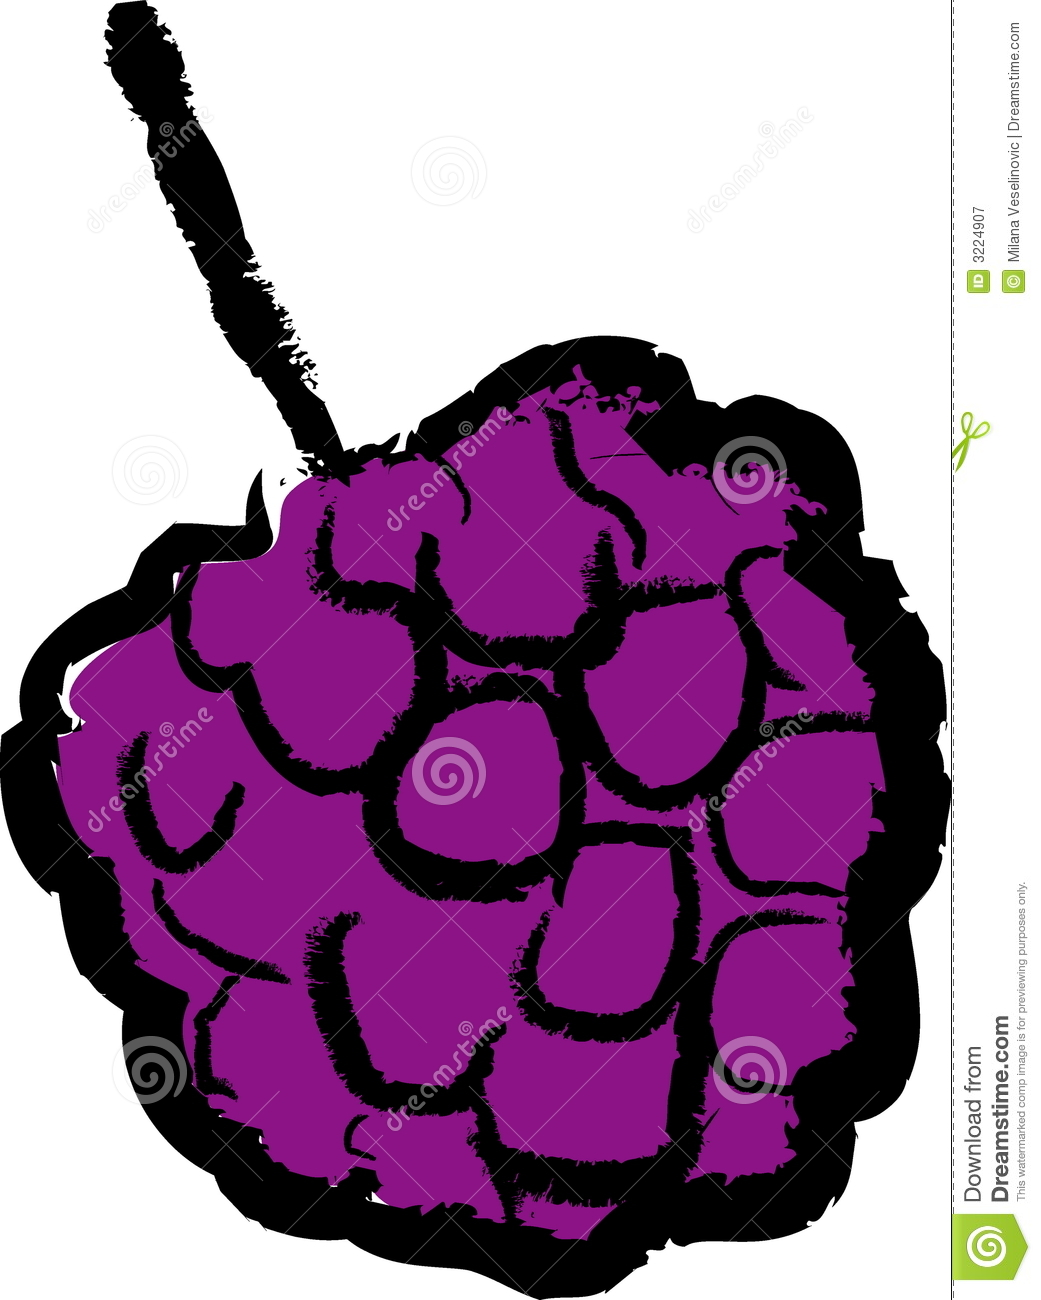 clipart for blackberry phone - photo #37